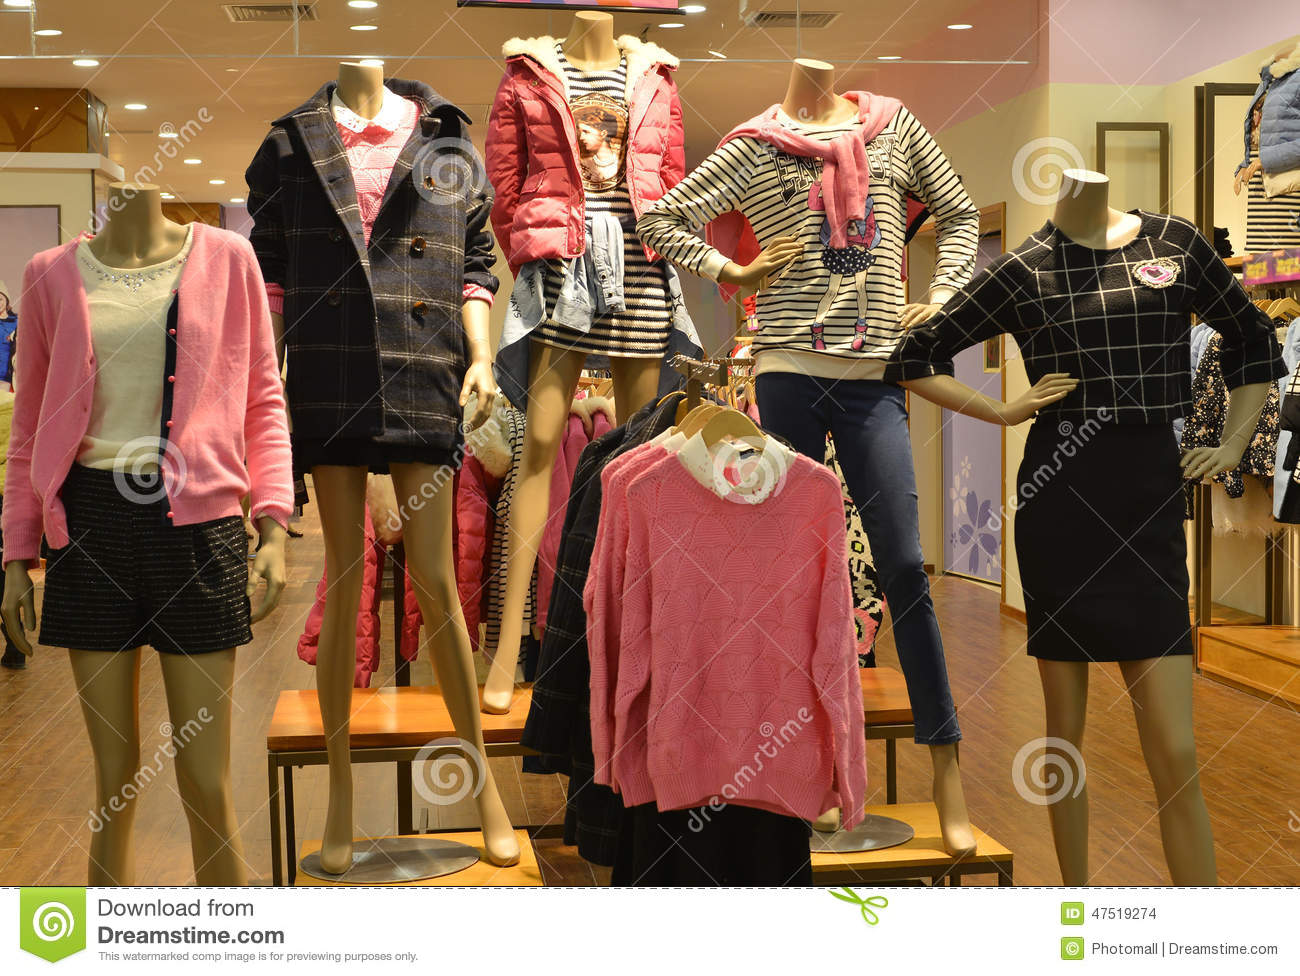 552ea90979bc7 Mannequins in fashion clothing store. display with mannequins in shopping  mall in Guangzhou (Kwangchow) City, Guangdong (Canton) province, China. A  display ...